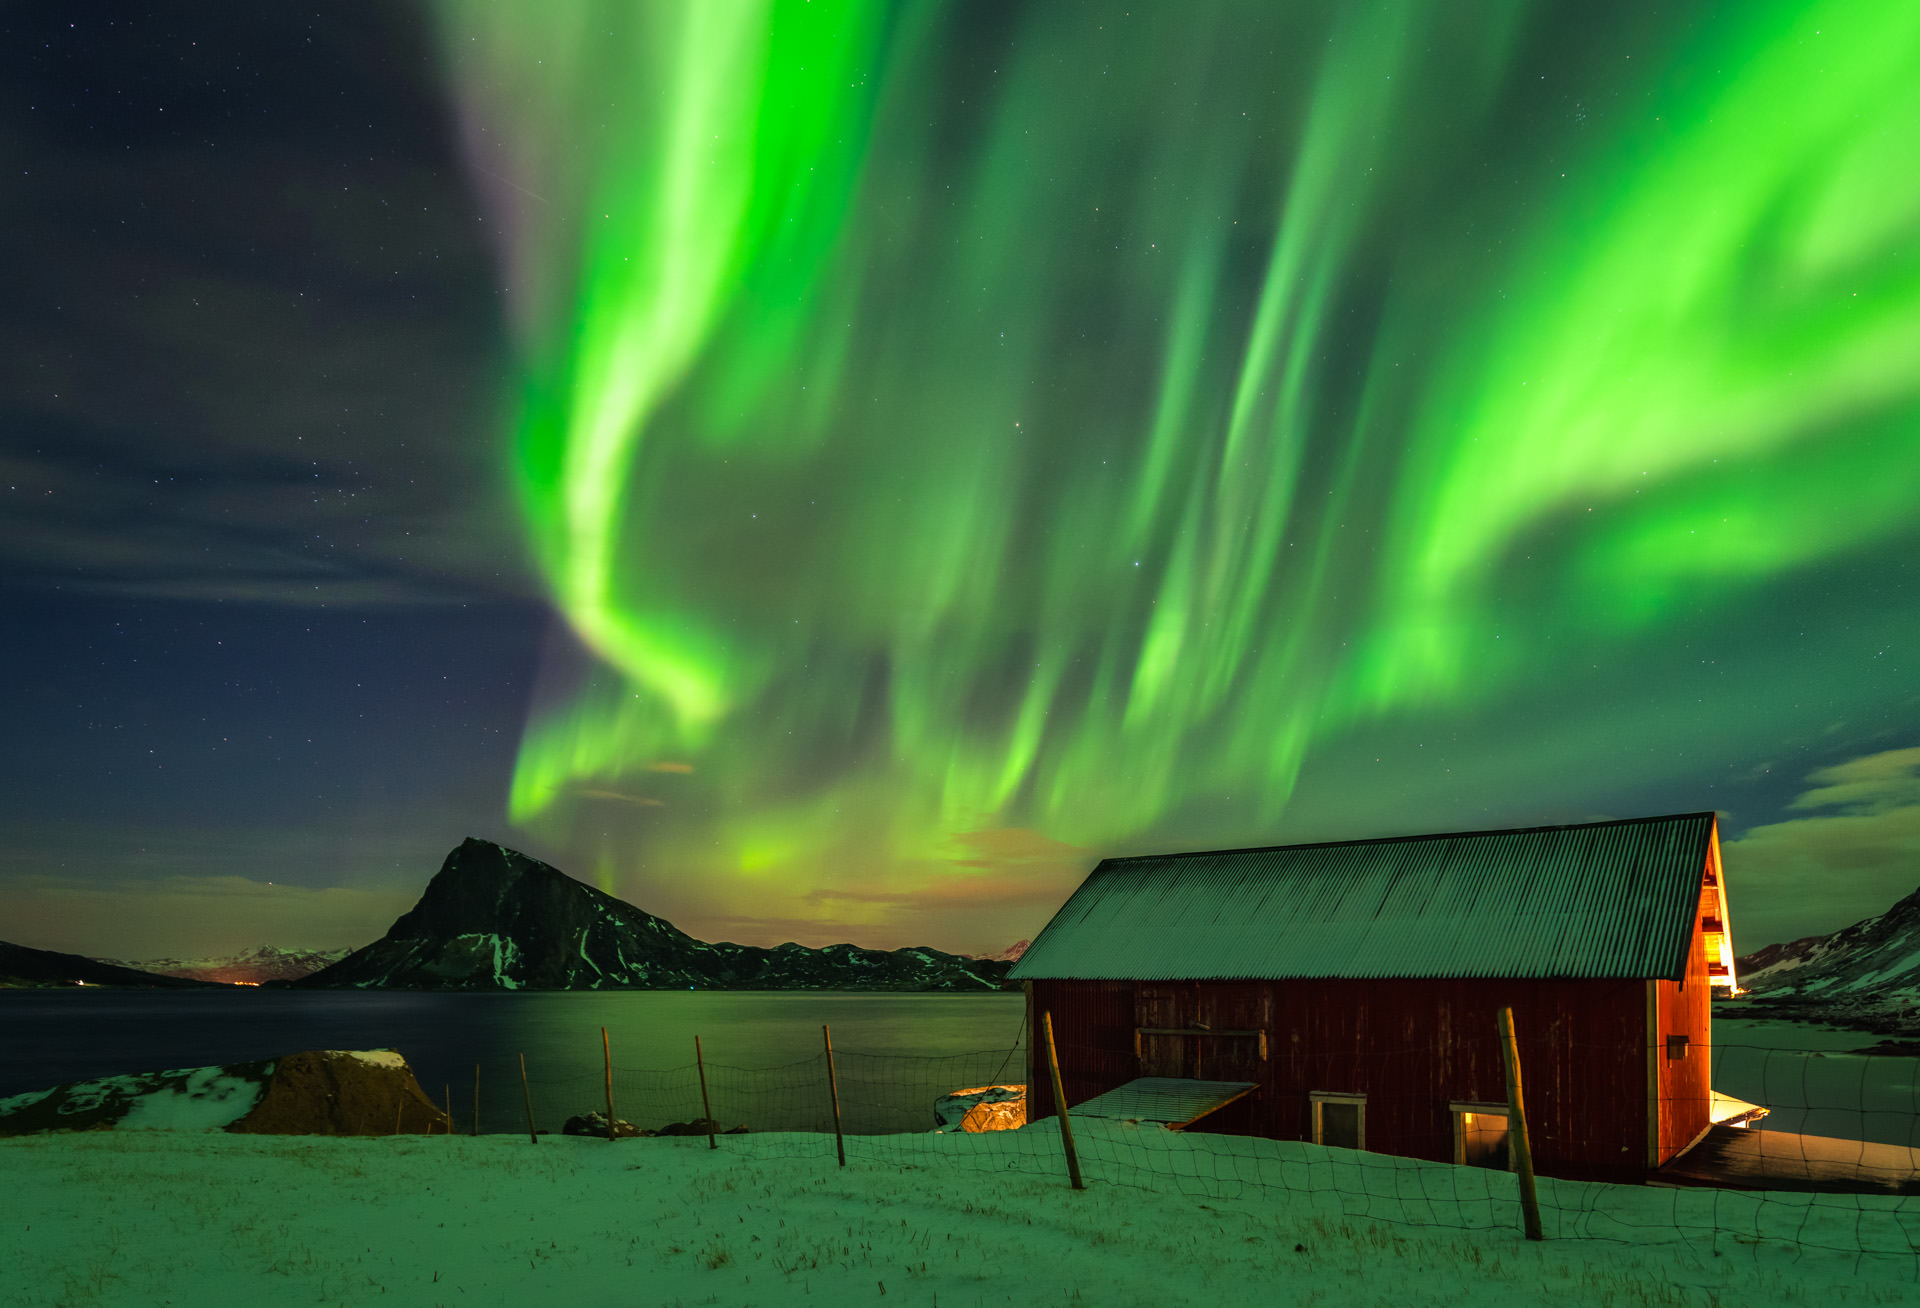 Aurora Borealis (Northern Lights) at Lofoten Islands - Landscape Photography in Norway